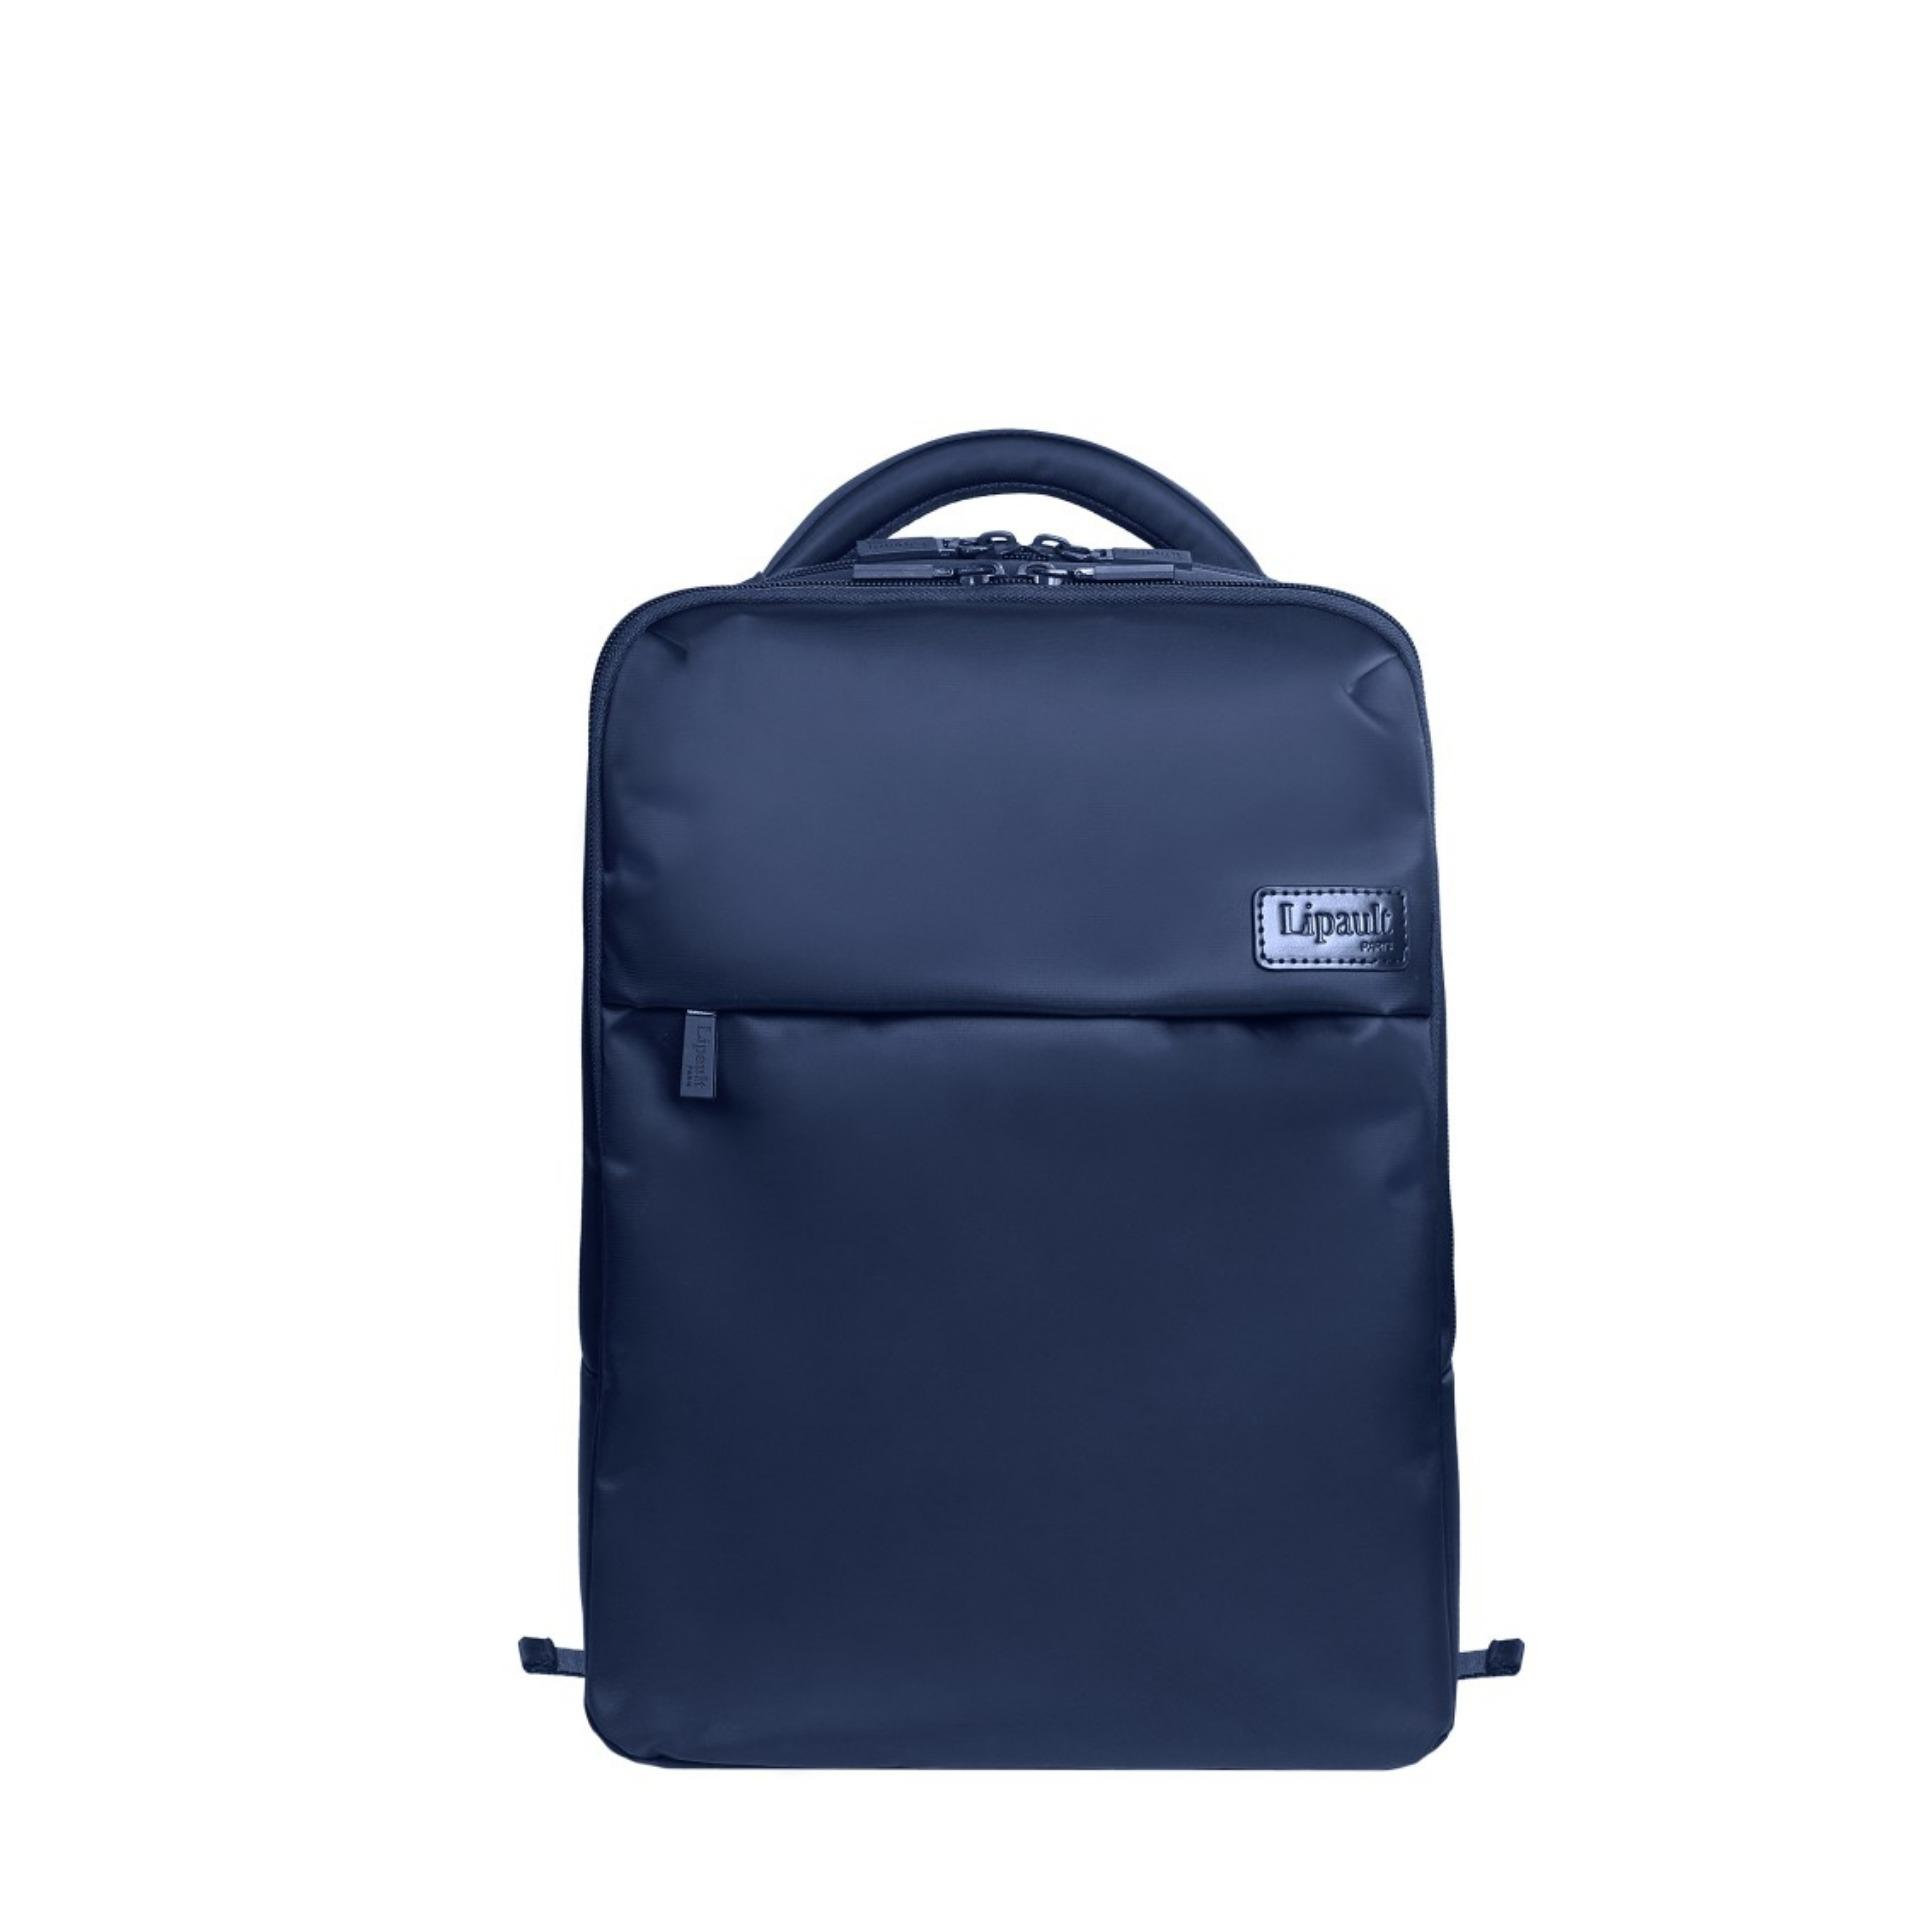 e903a0d8ffd9 Lipault Philippines  Lipault price list - Luggage Bags